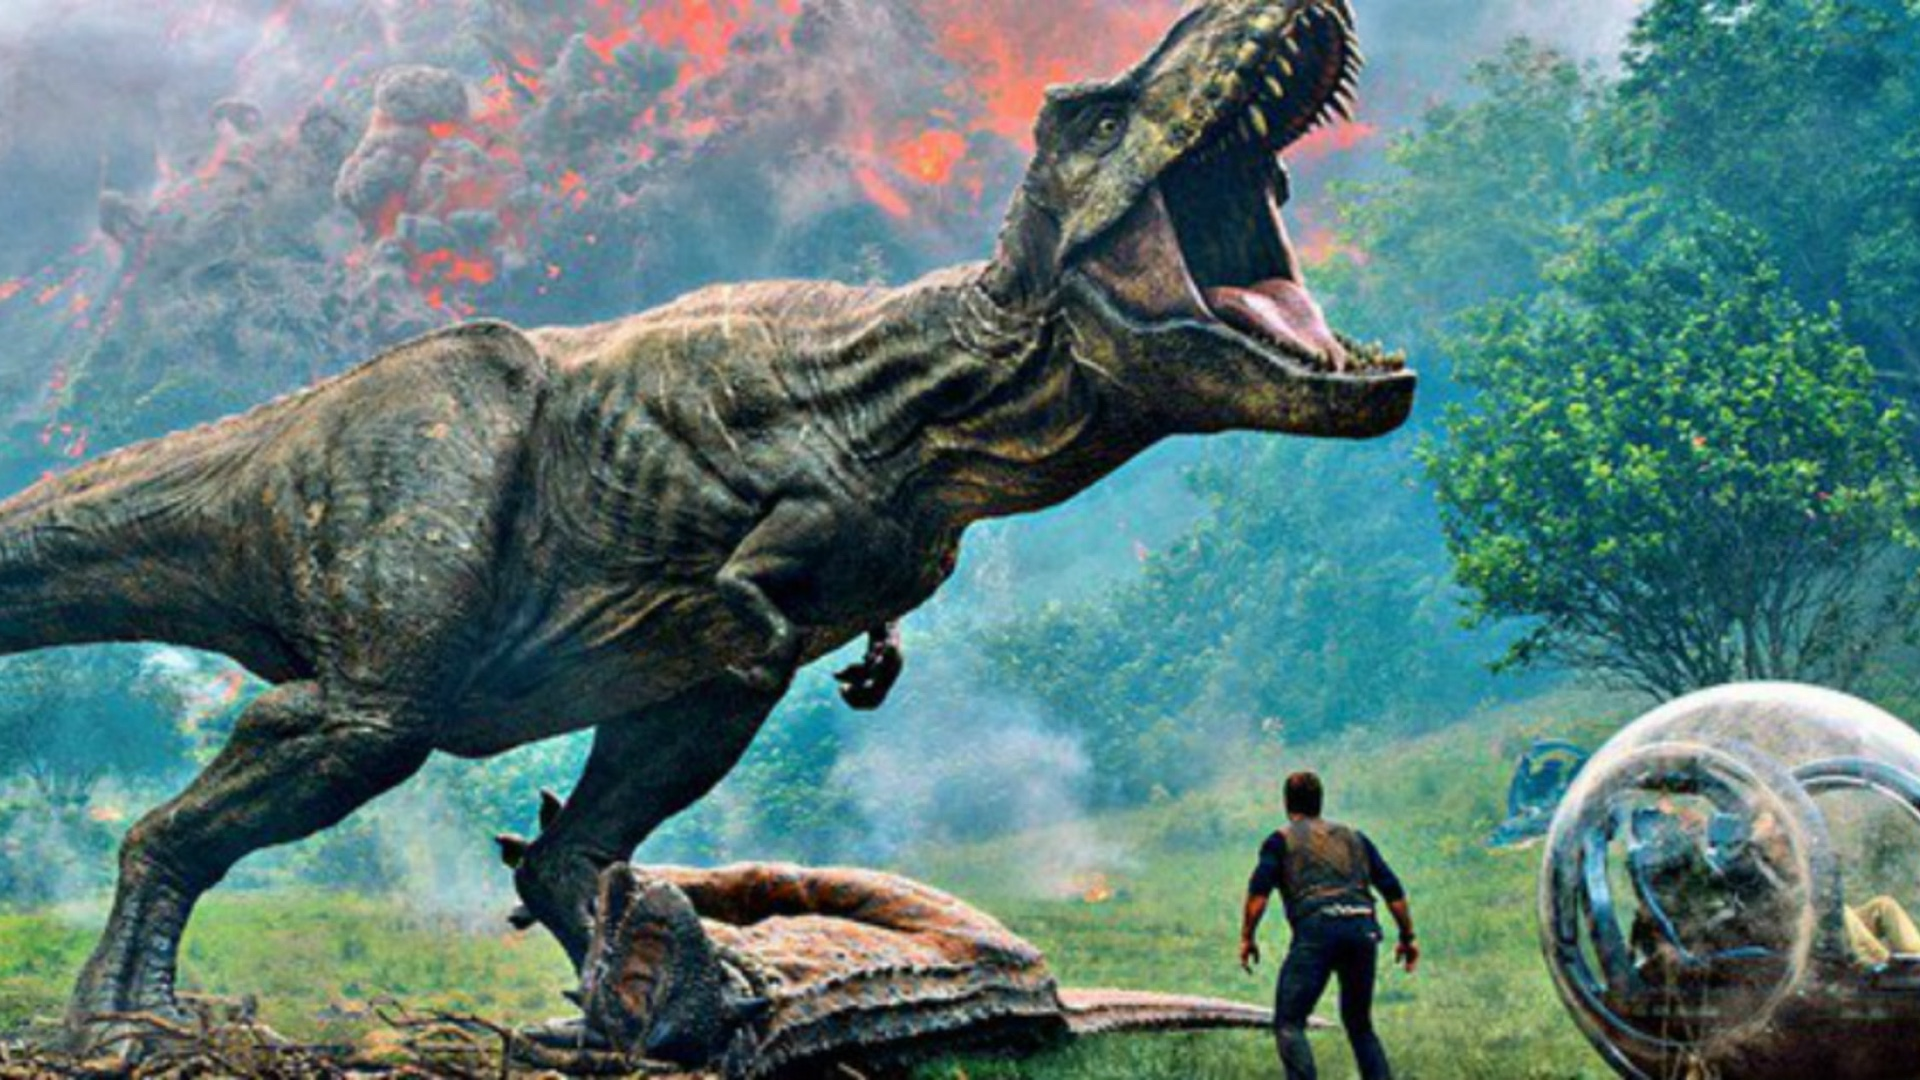 new-details-on-jurassic-world-fallen-kingdom-and-it-will-set-up-jurassic-world-3-social.jpg